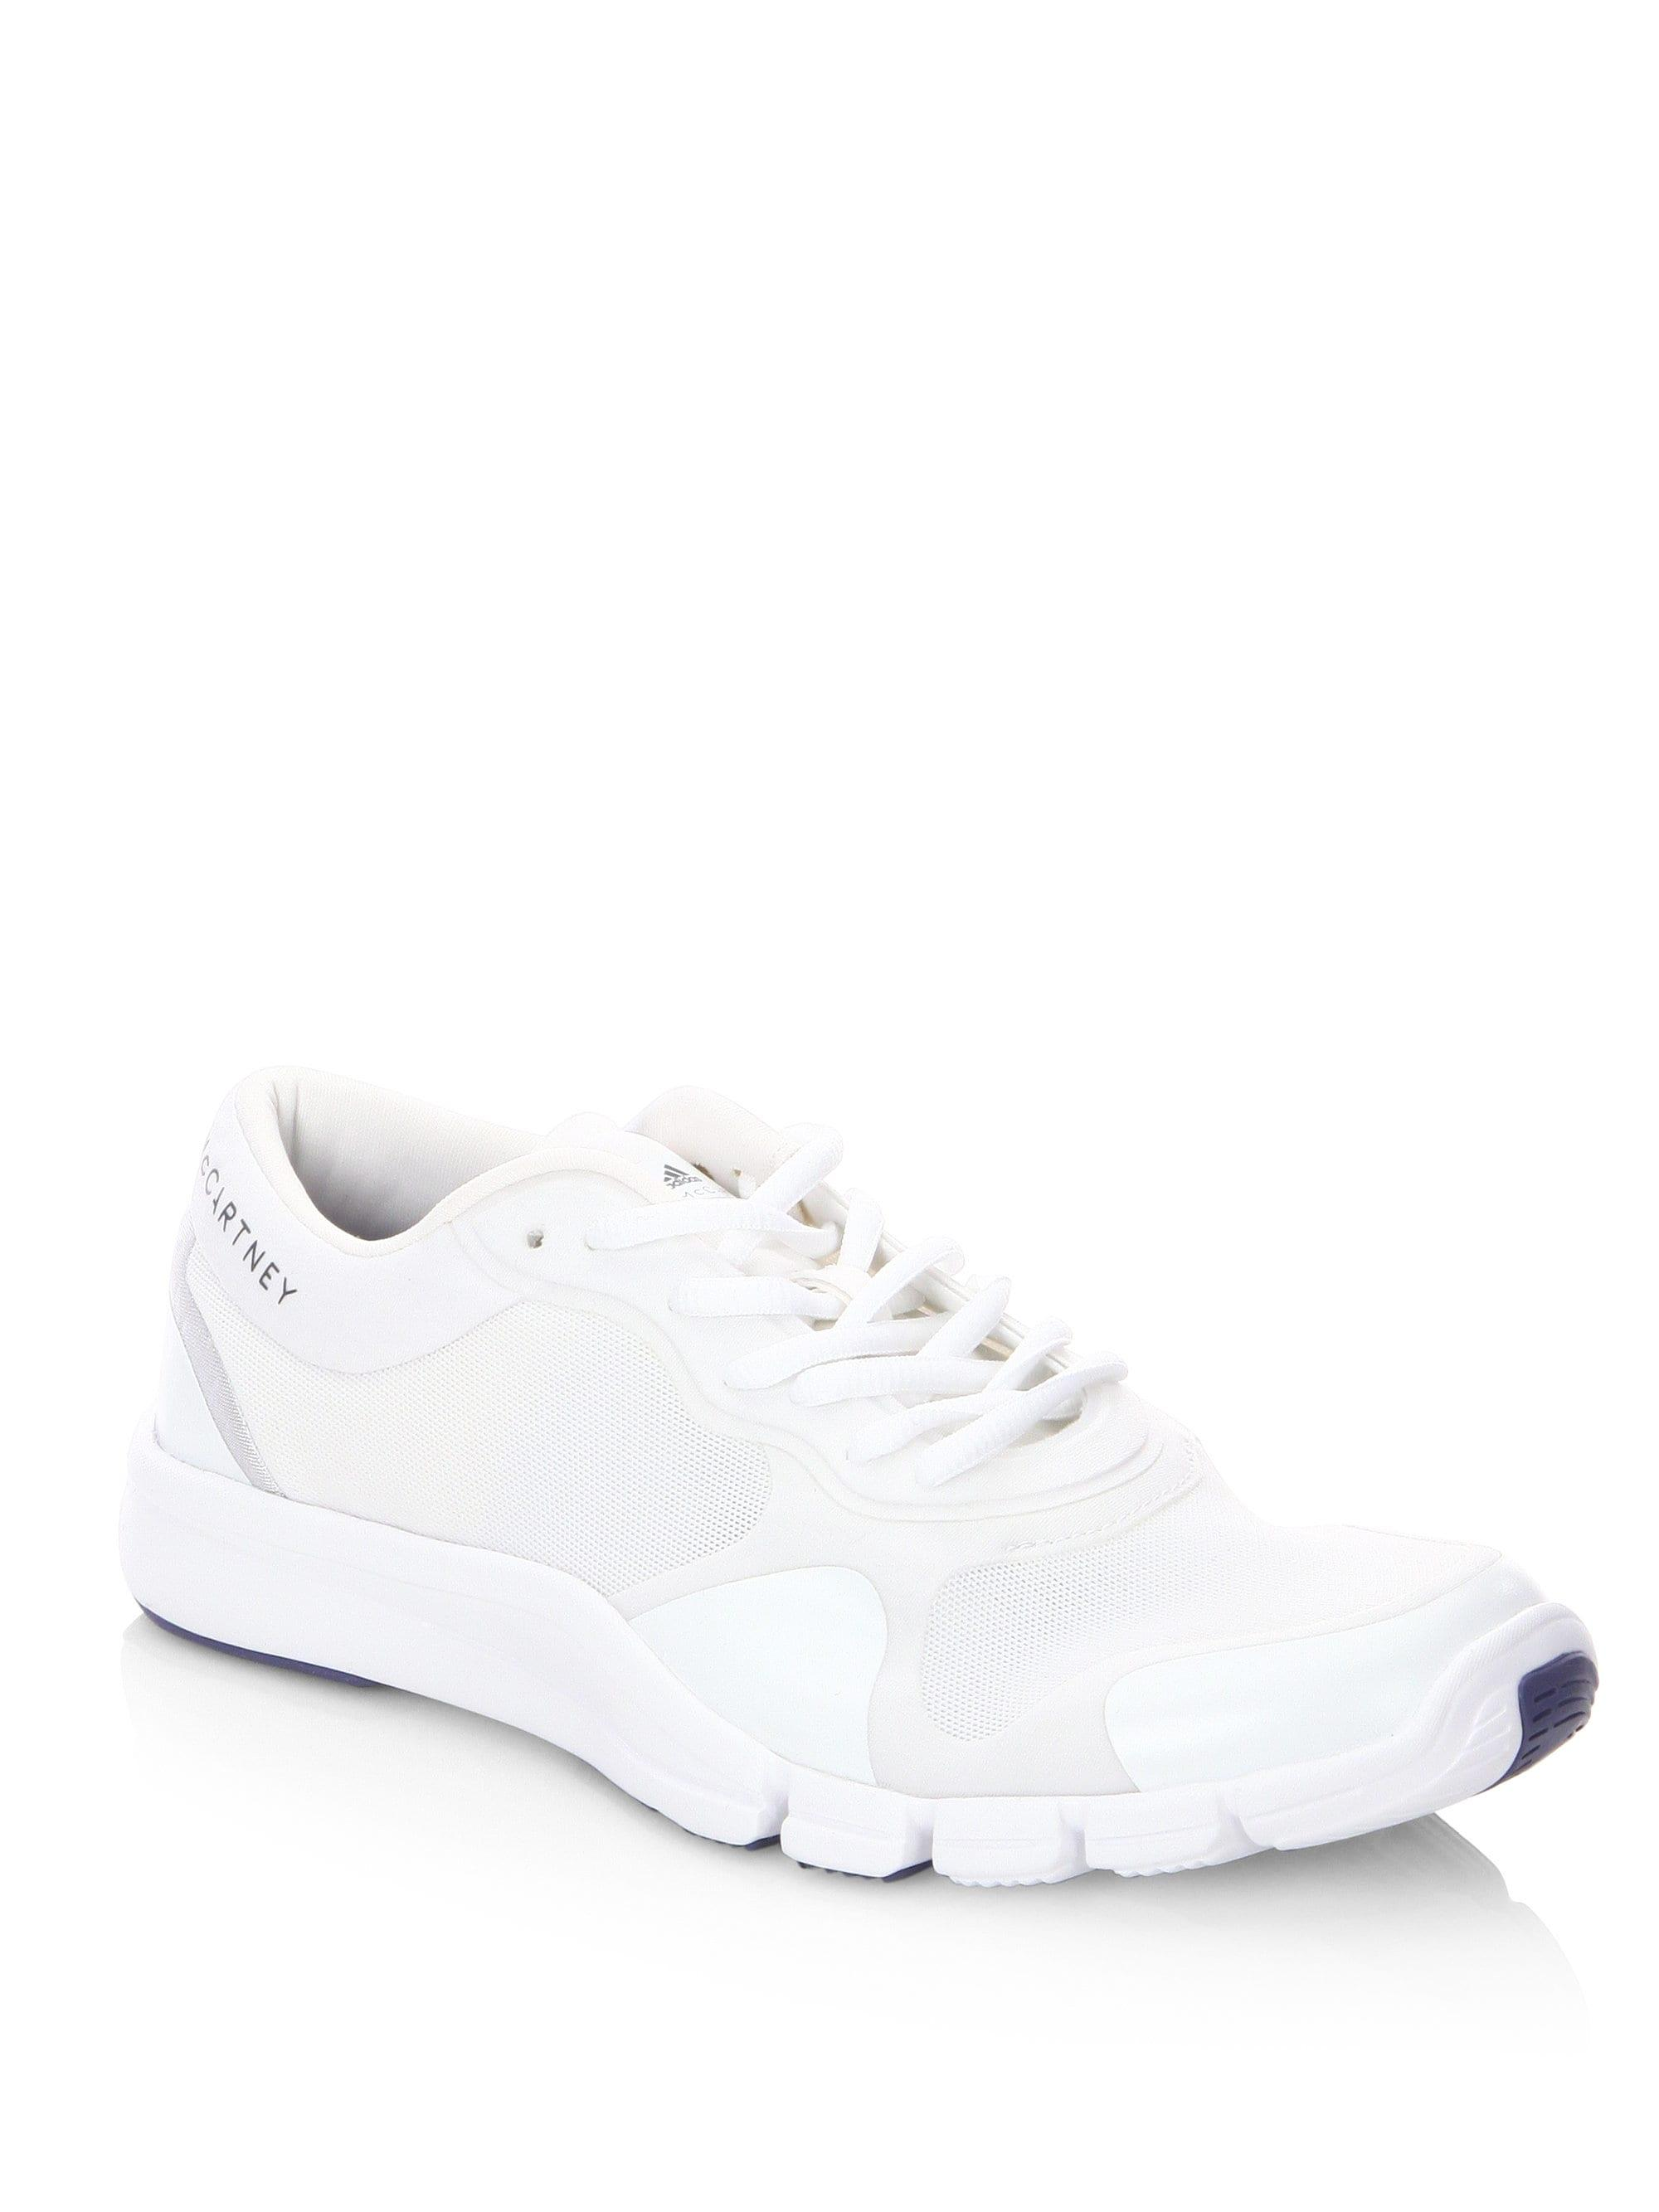 adidas By Stella McCartney Adipure Trainer Sneakers in White - Save ... b1e414912